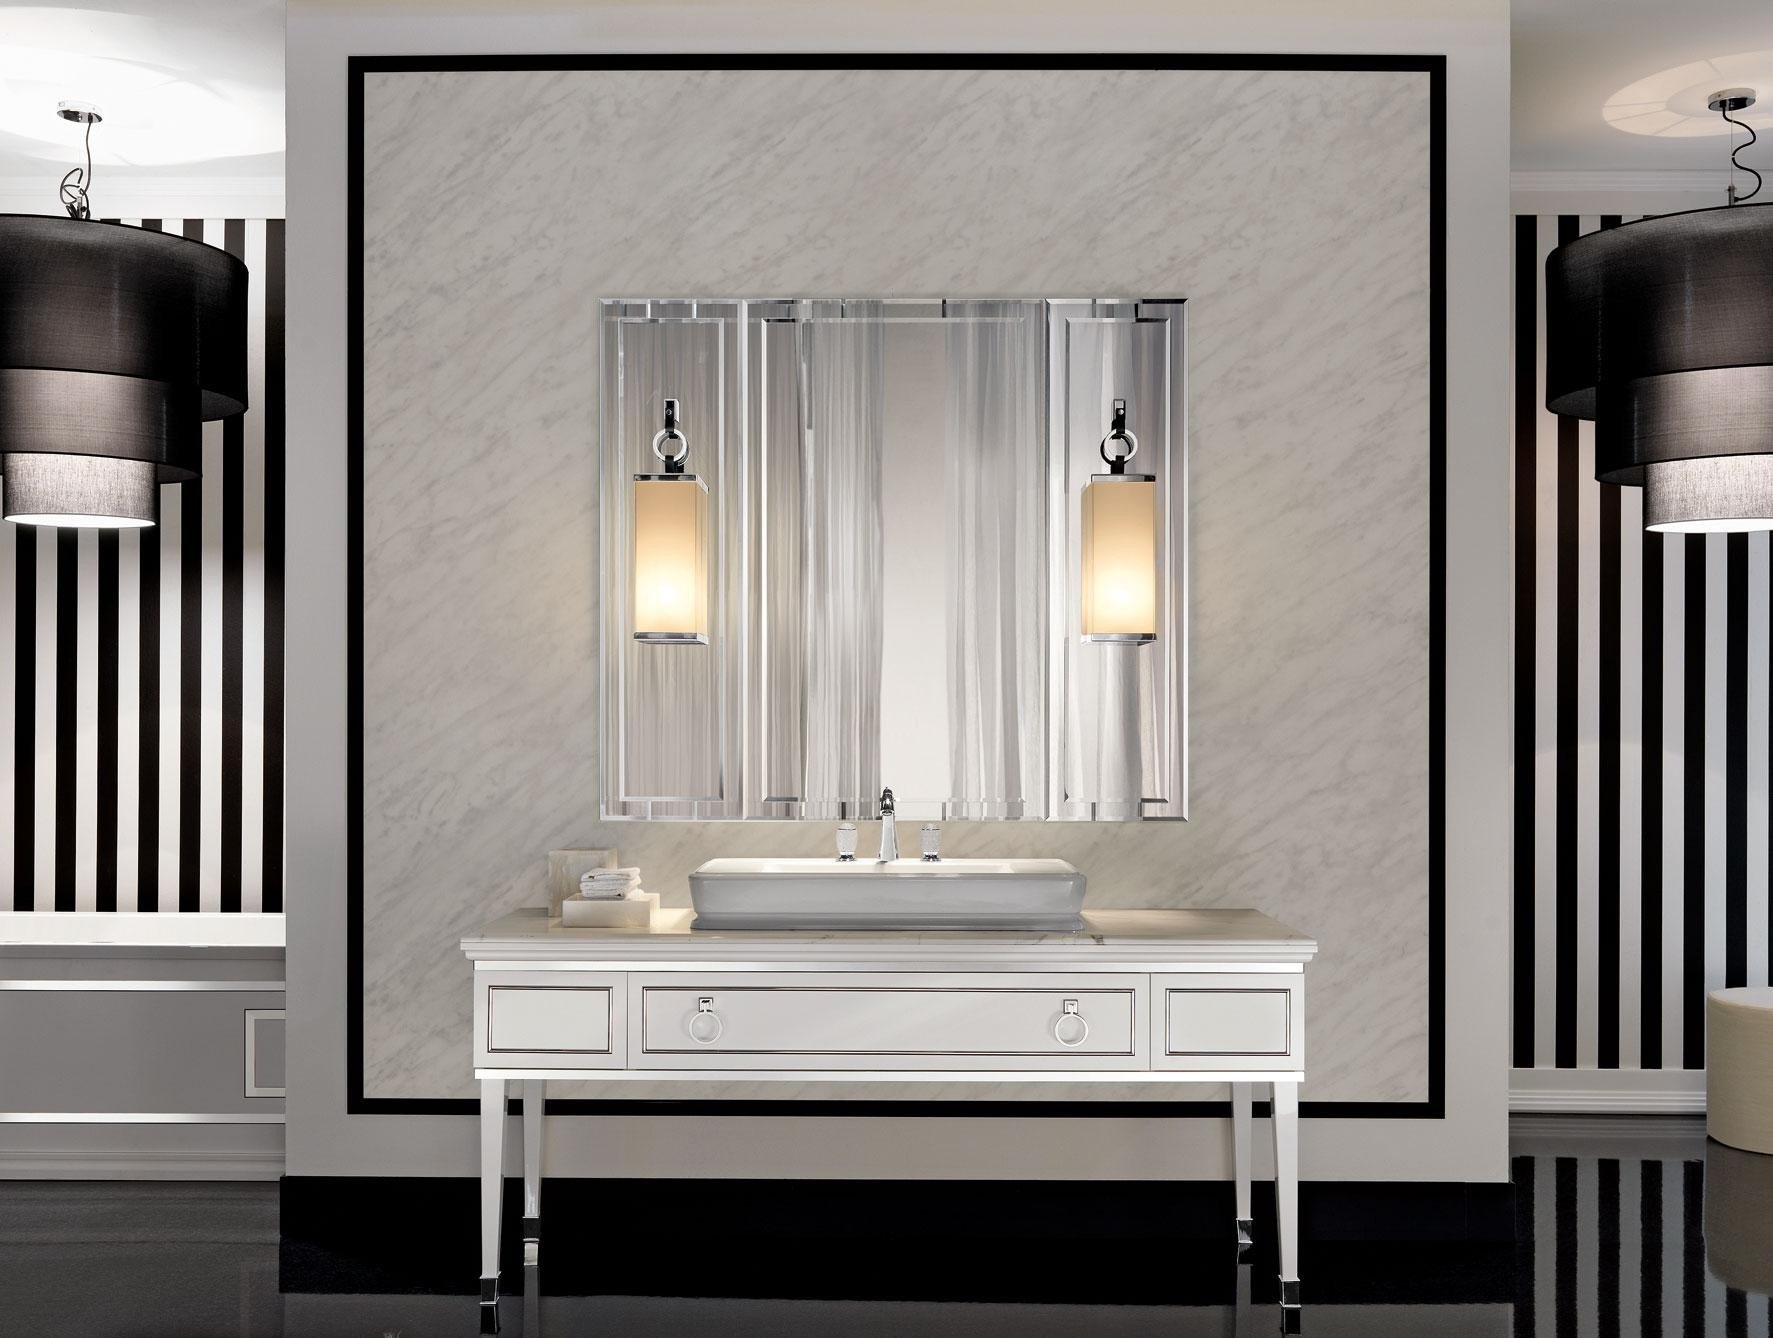 Lutetia L3 Luxury Art Deco Italian Bathroom Furniture In White Lacquer In Italian Wall Art For Bathroom (View 19 of 20)